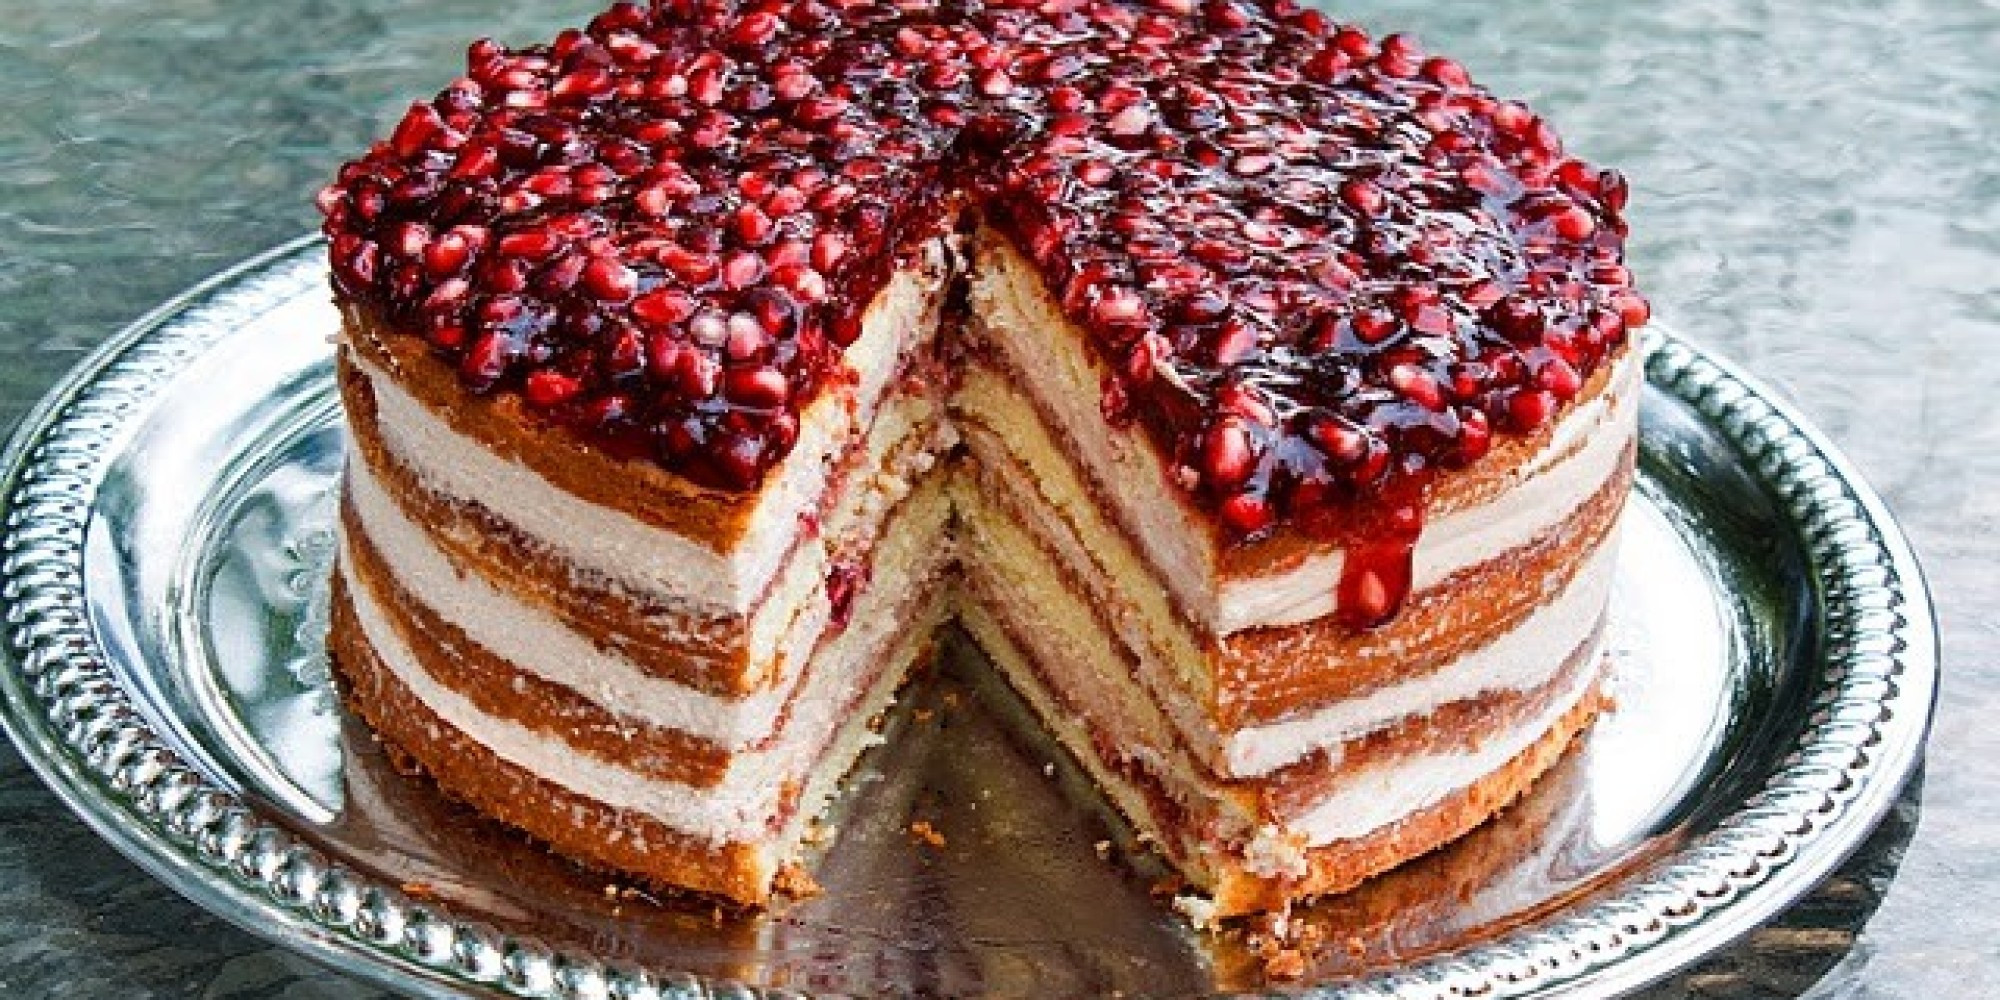 The Best Christmas Desserts  The Most Stunning Christmas Dessert Recipes Ever PHOTOS